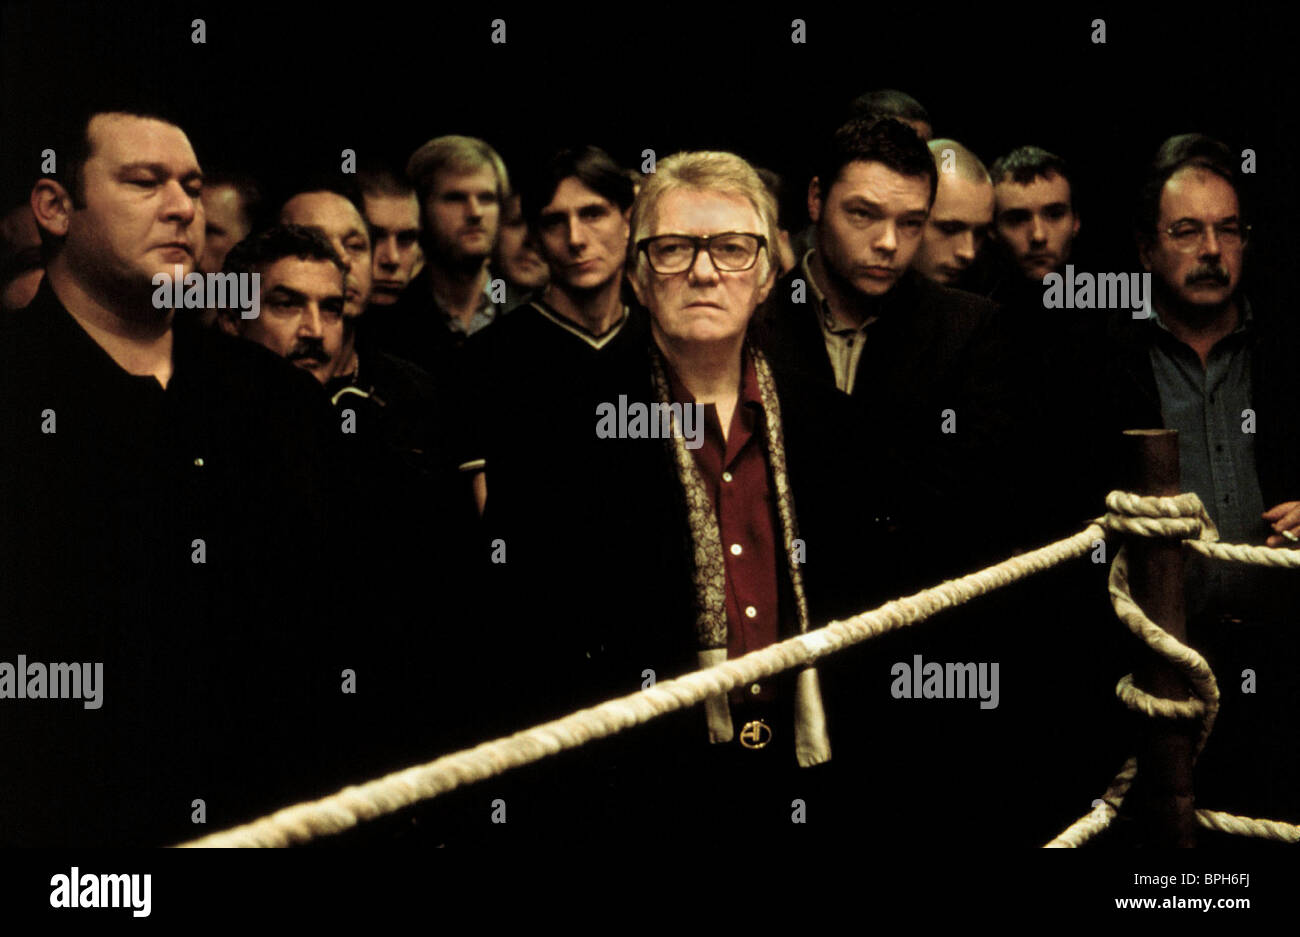 ALAN FORD SNATCH (2000) - Stock Image